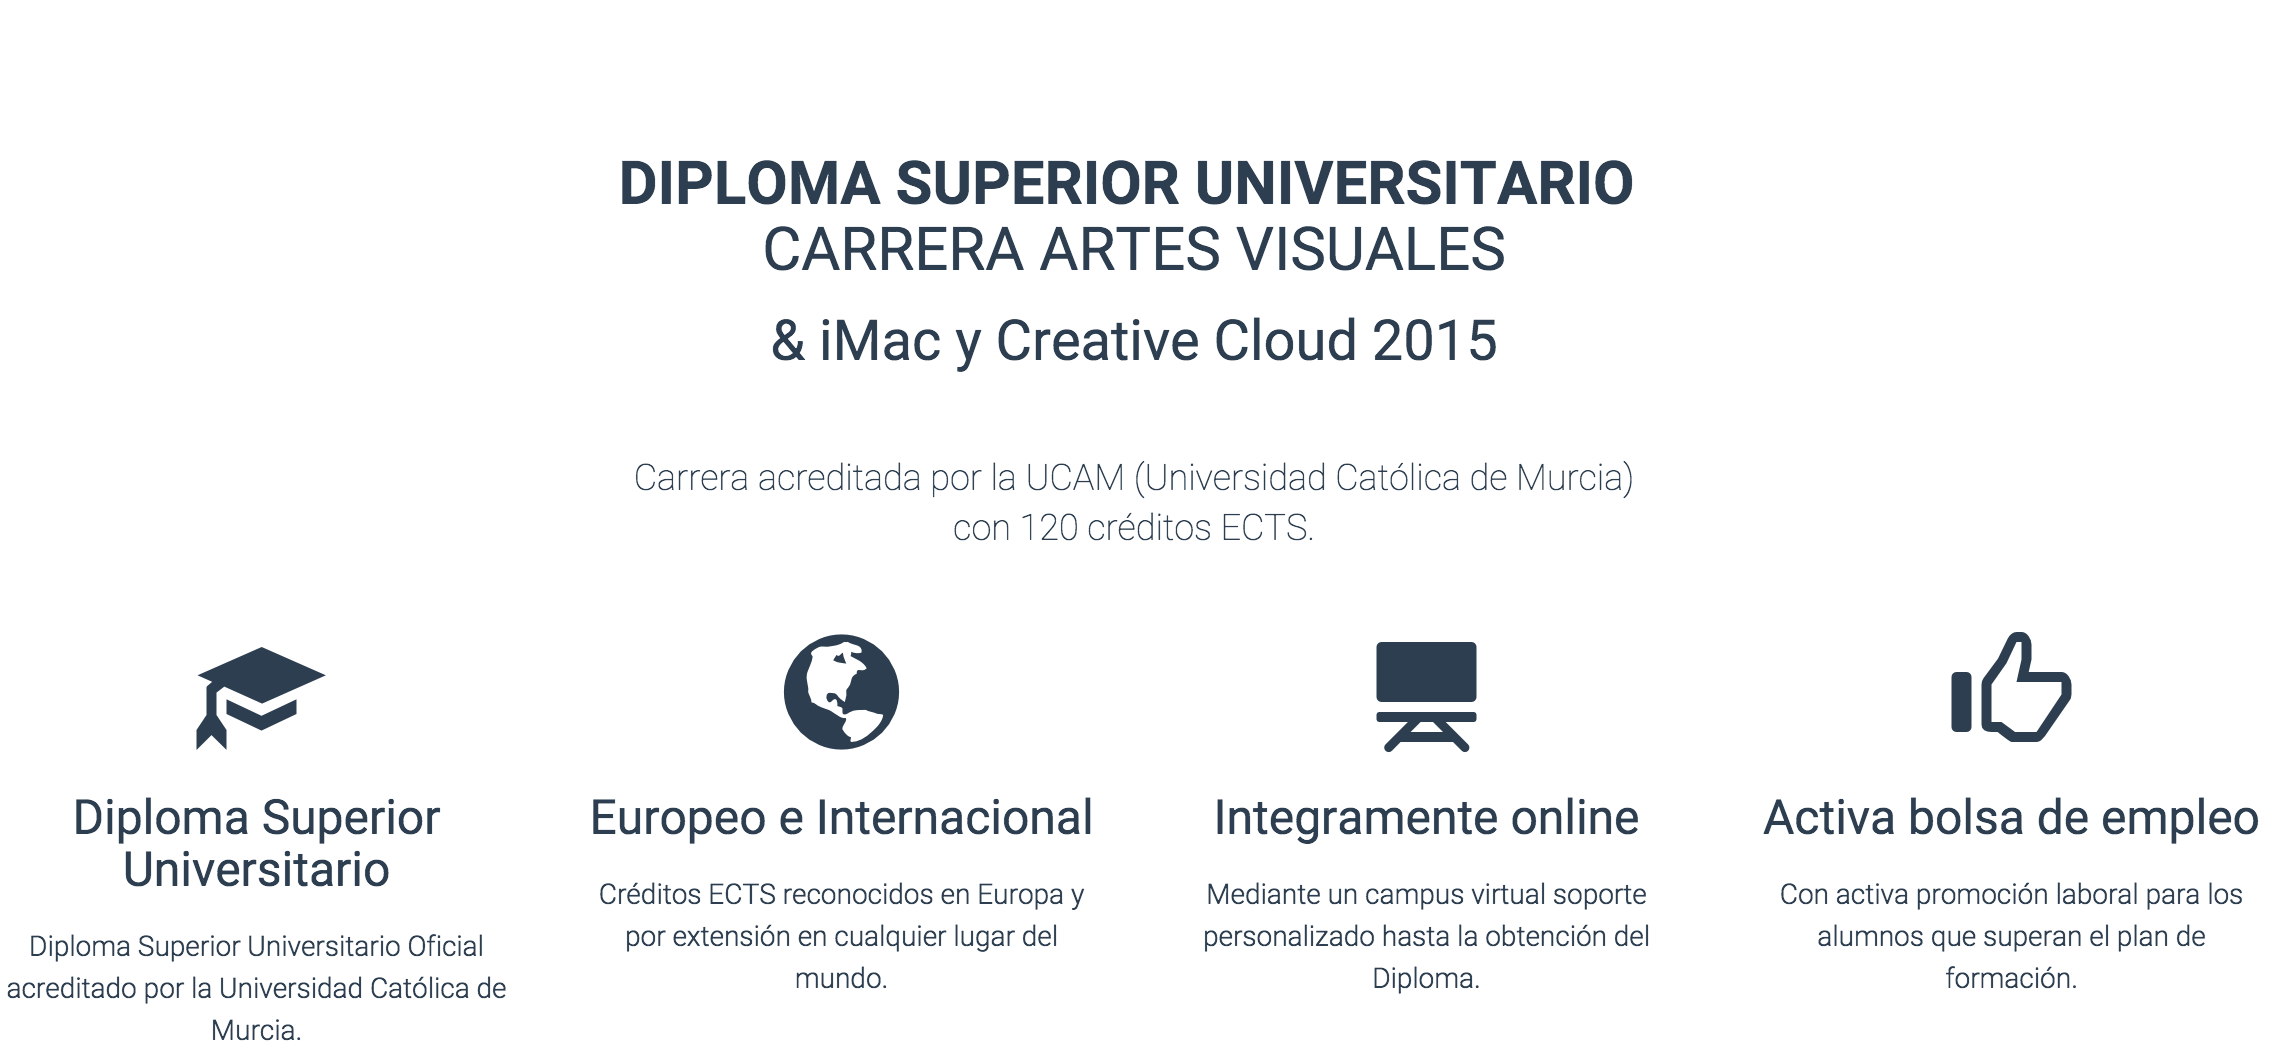 Diploma Superior Universitario. Carrera en Artes Visuales.